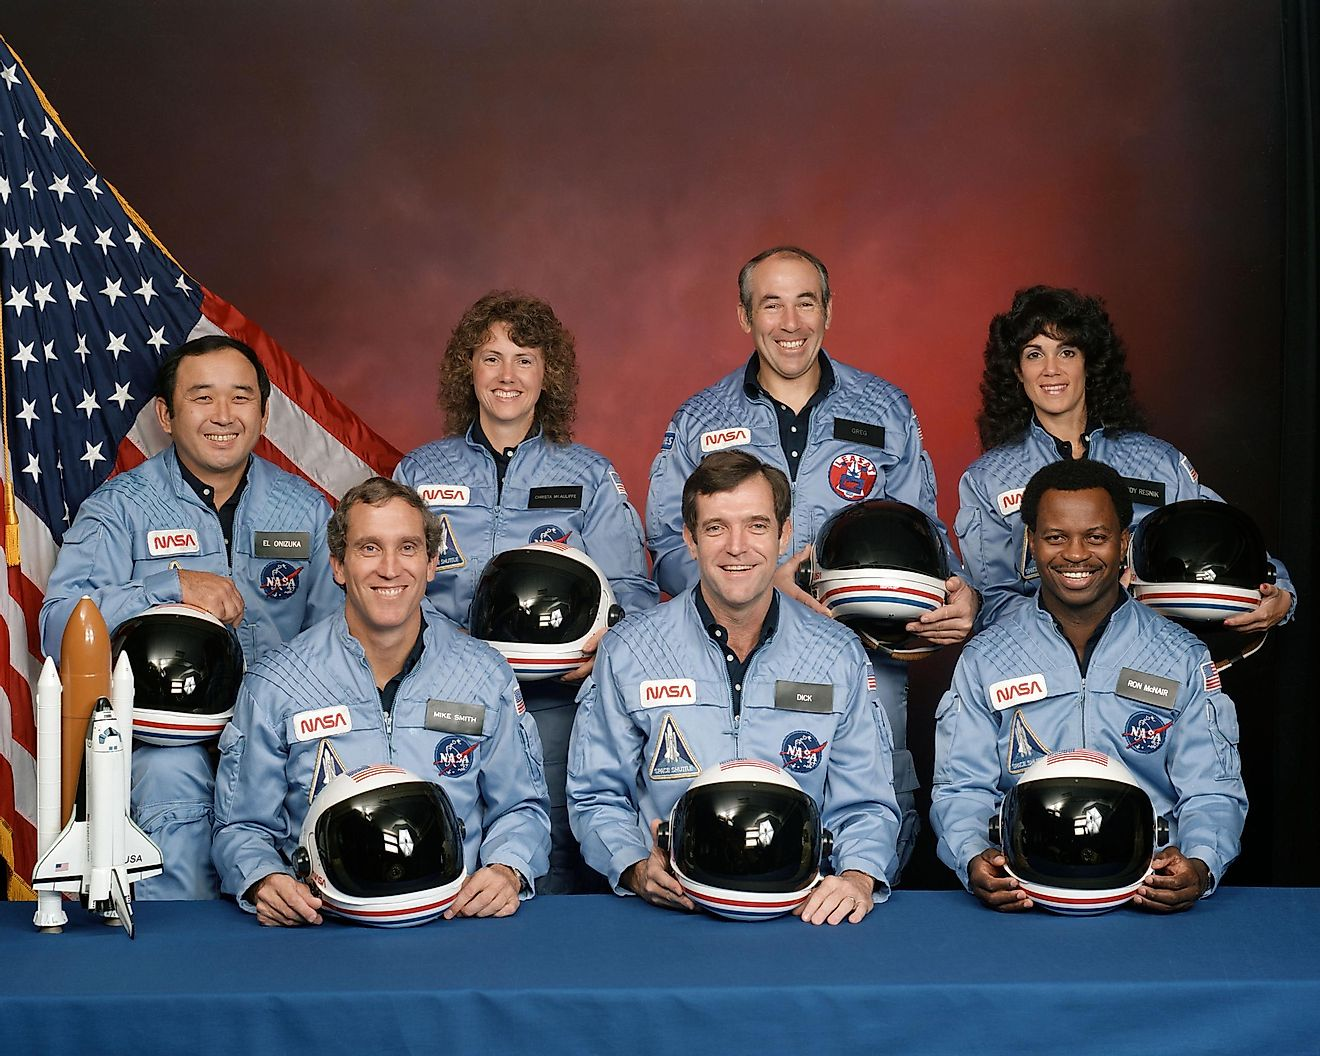 10 Reasons The Challenger Disaster Is So Historical